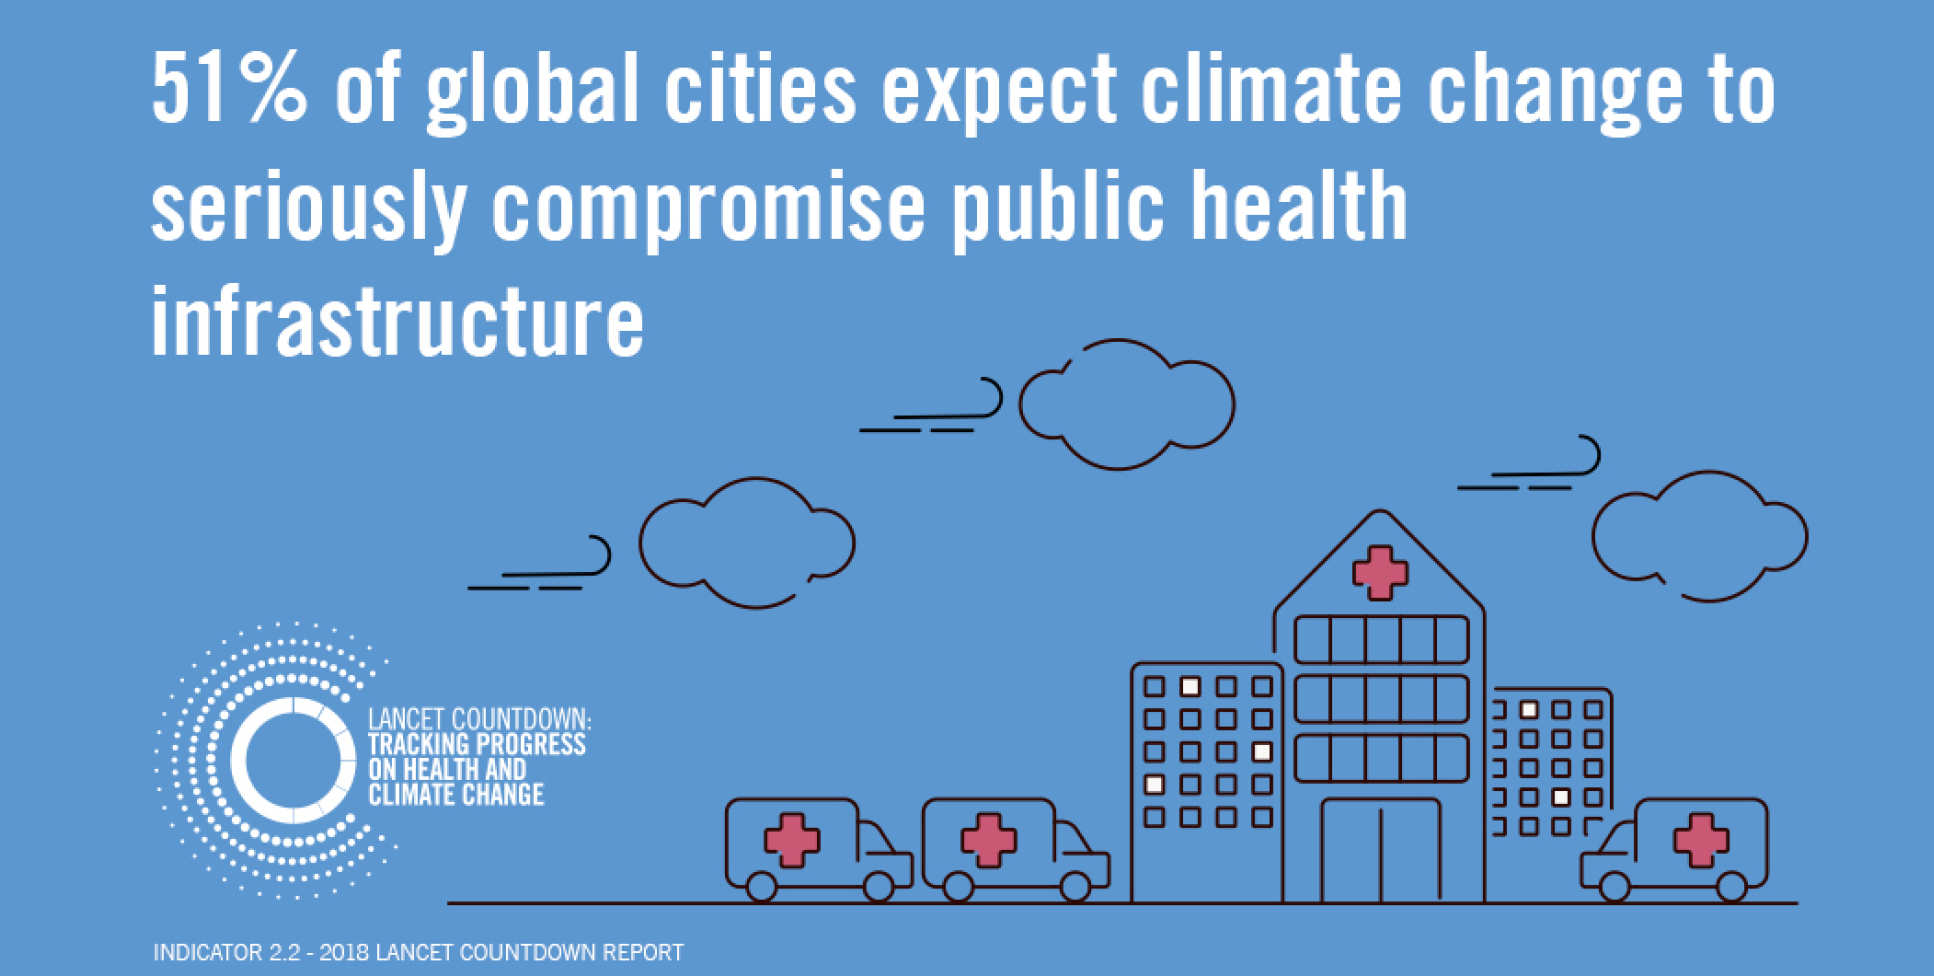 Infographic showing 51% cities expect climate change to compromise public health facilities